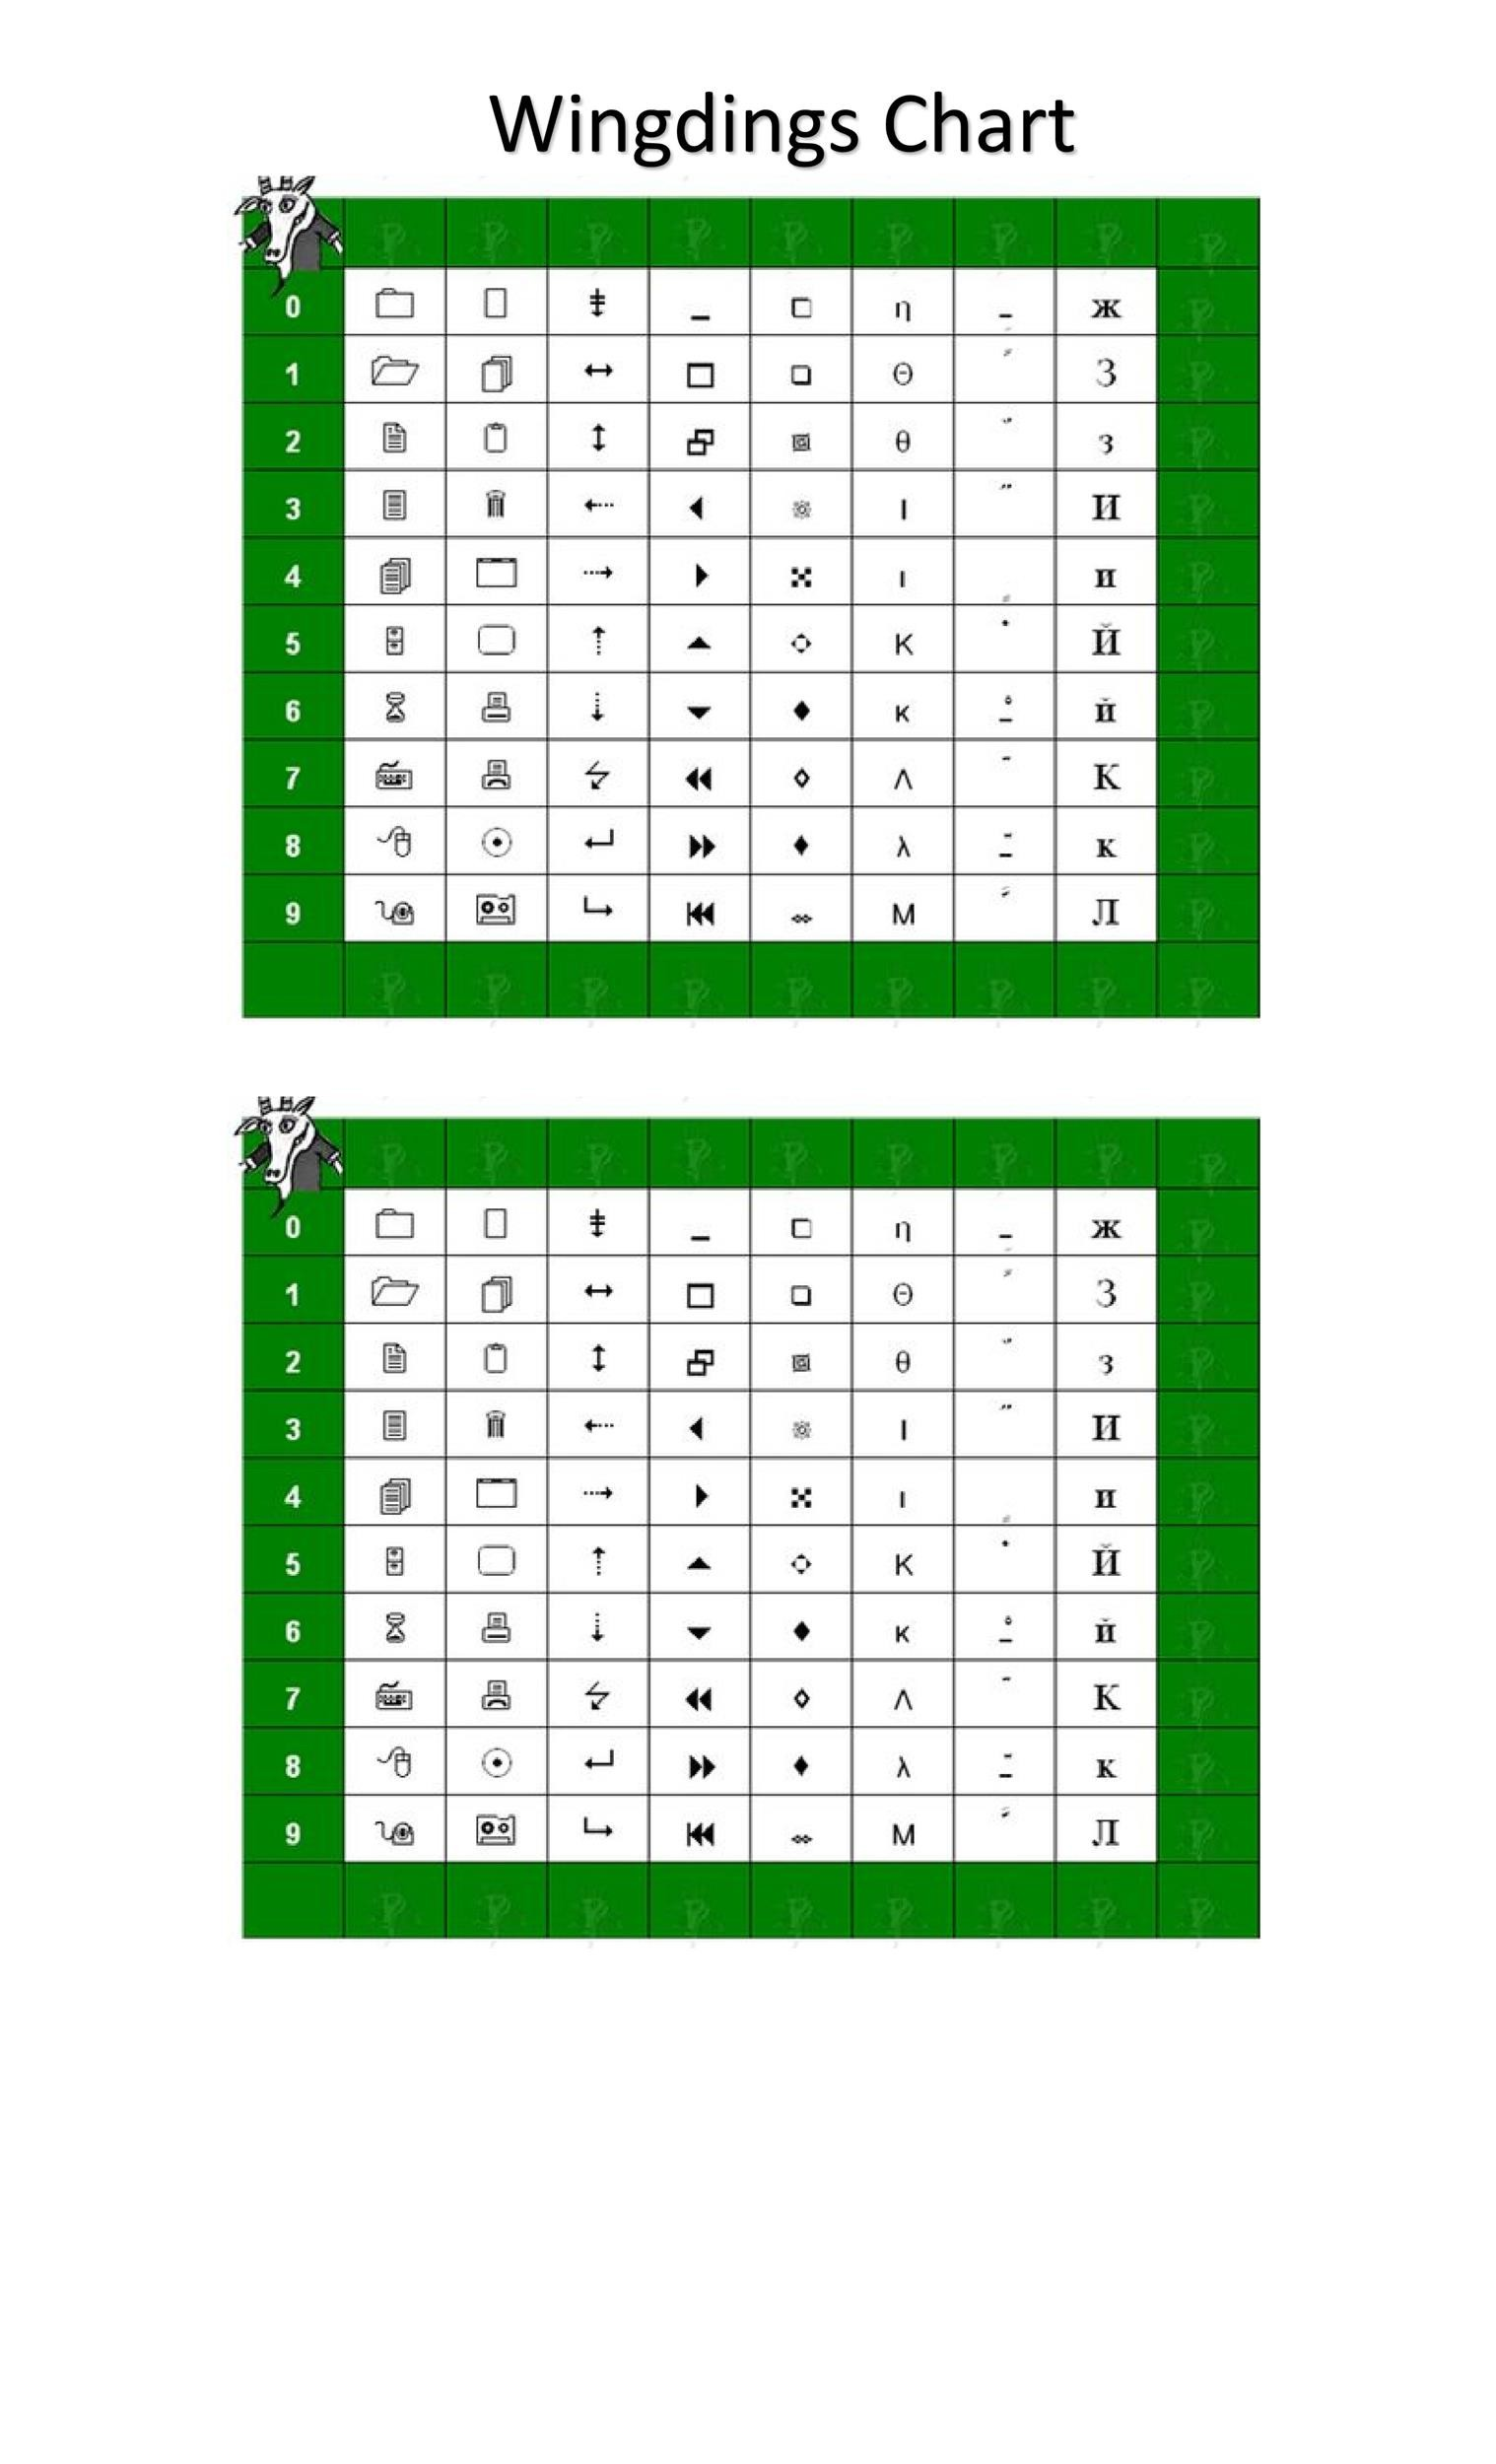 Free wingdings translator template 35